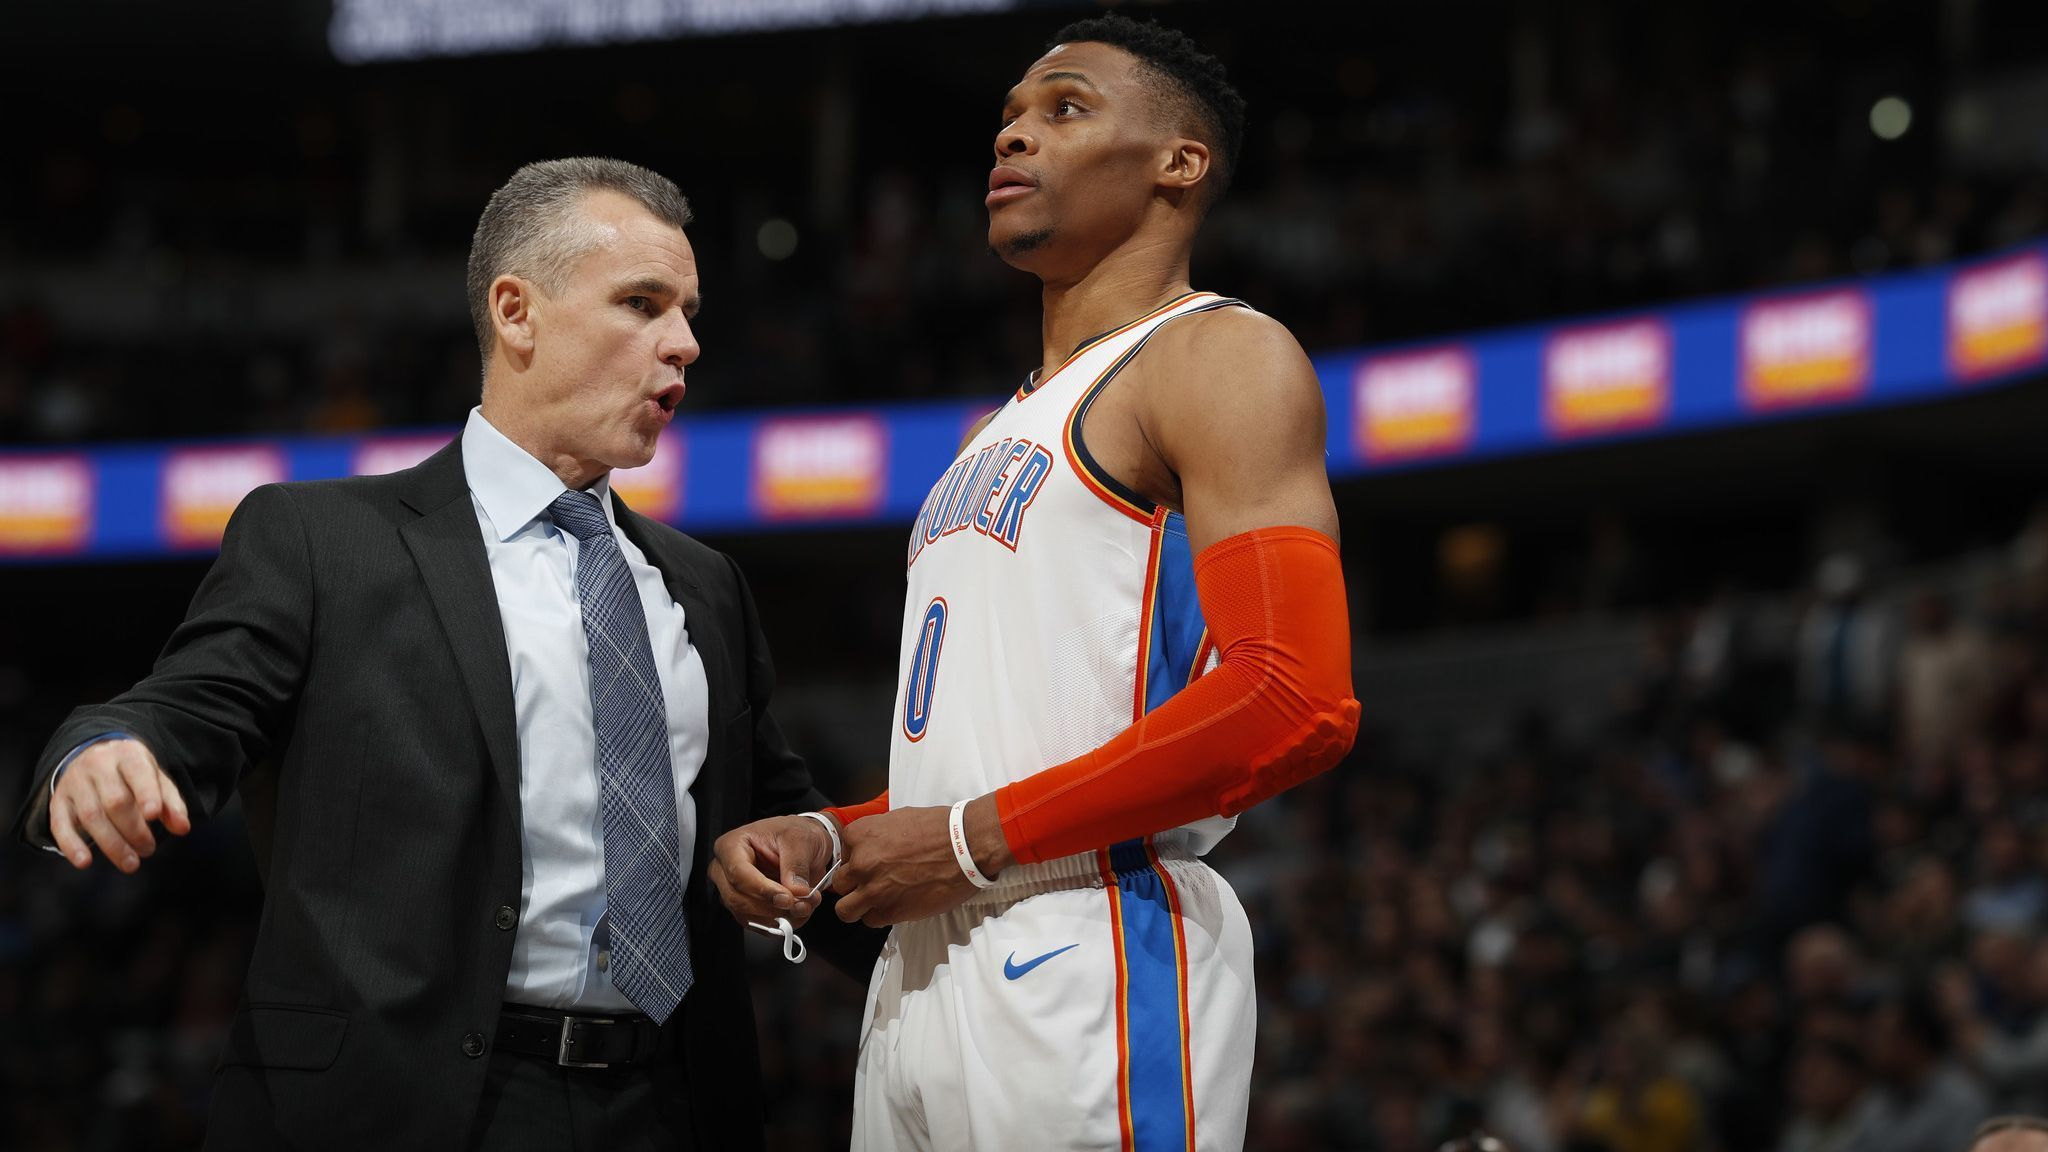 Would Thunder head coach Billy Donovan trade Westbrook for Westwood?